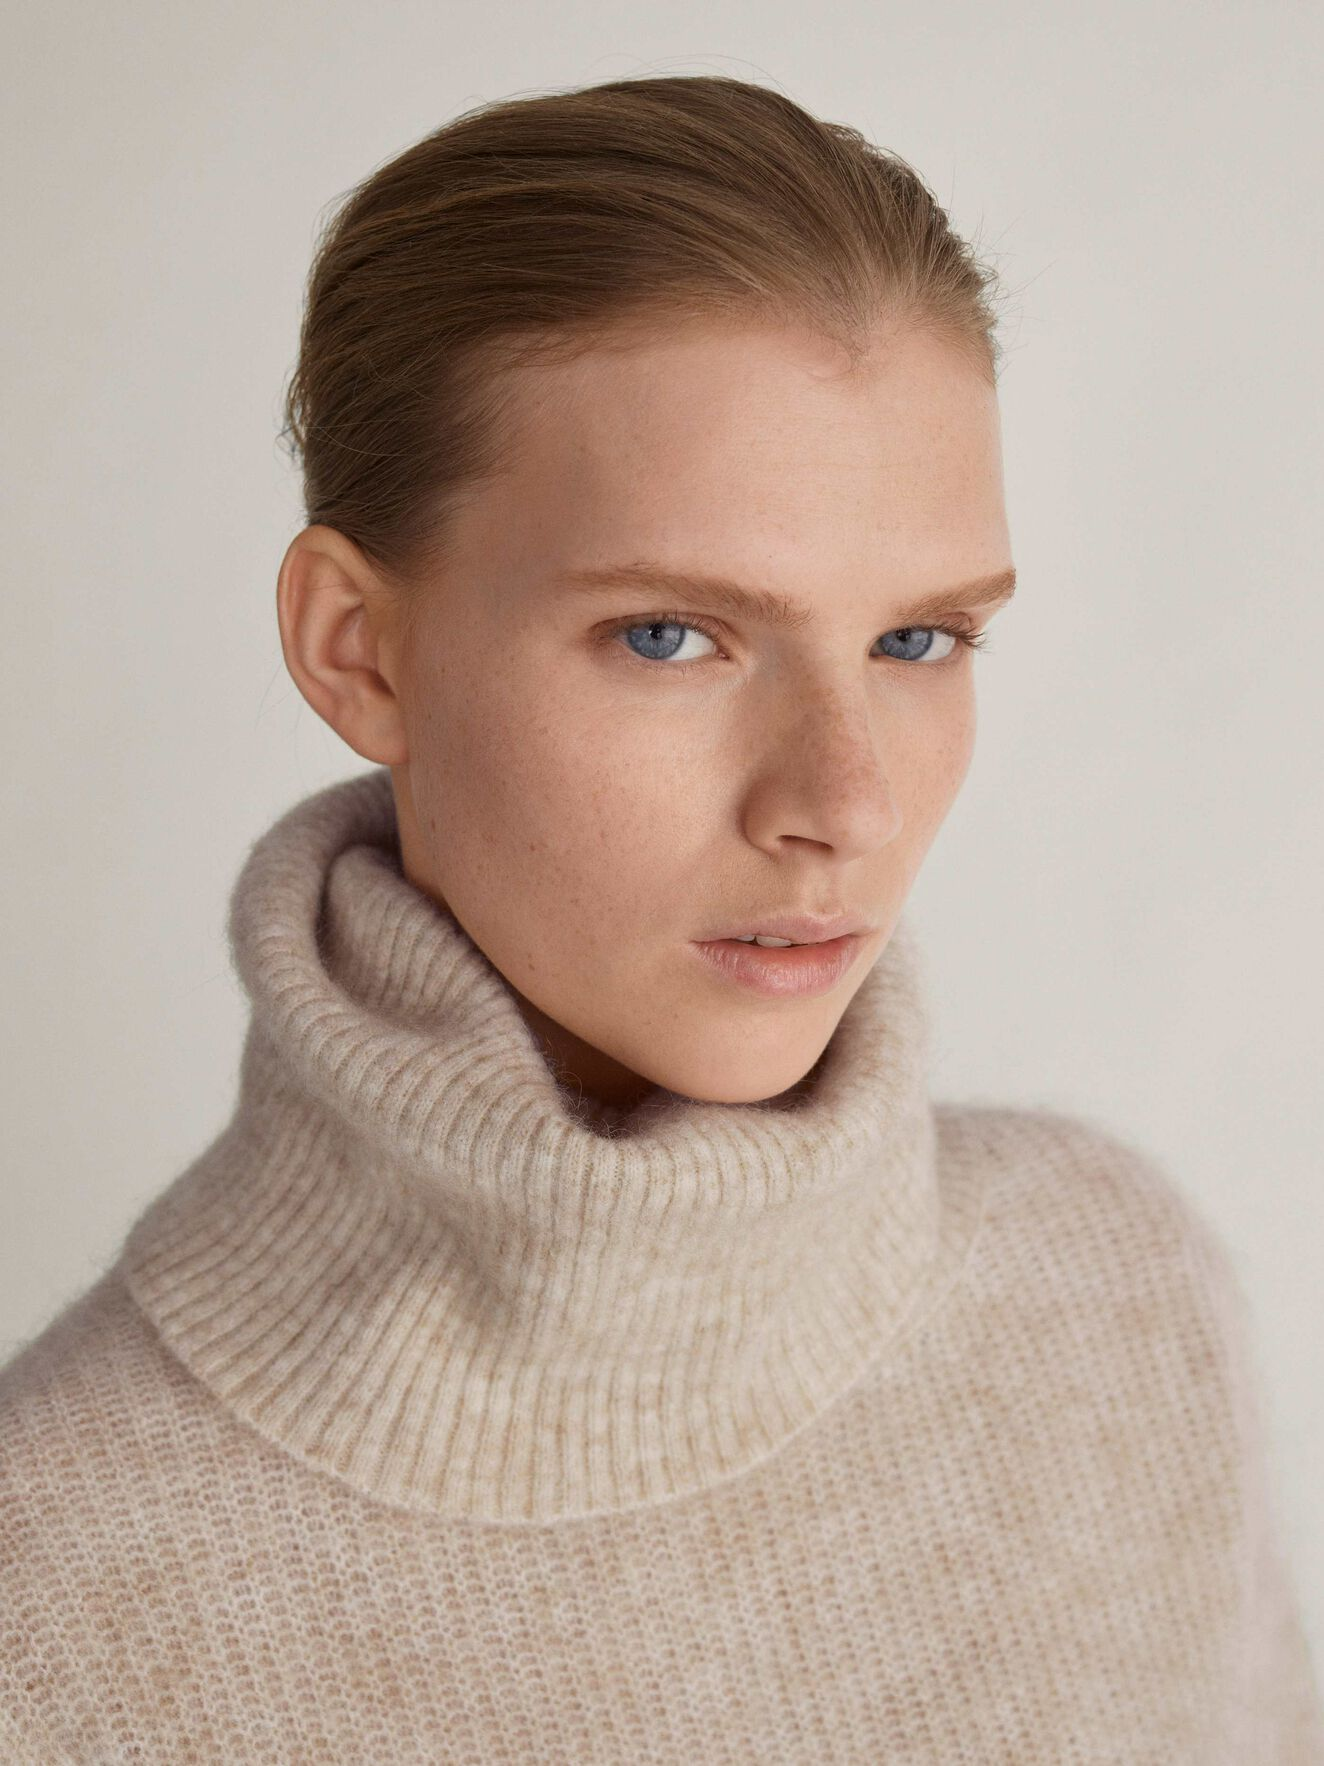 Cadena Pullover in Roasted Oat from Tiger of Sweden